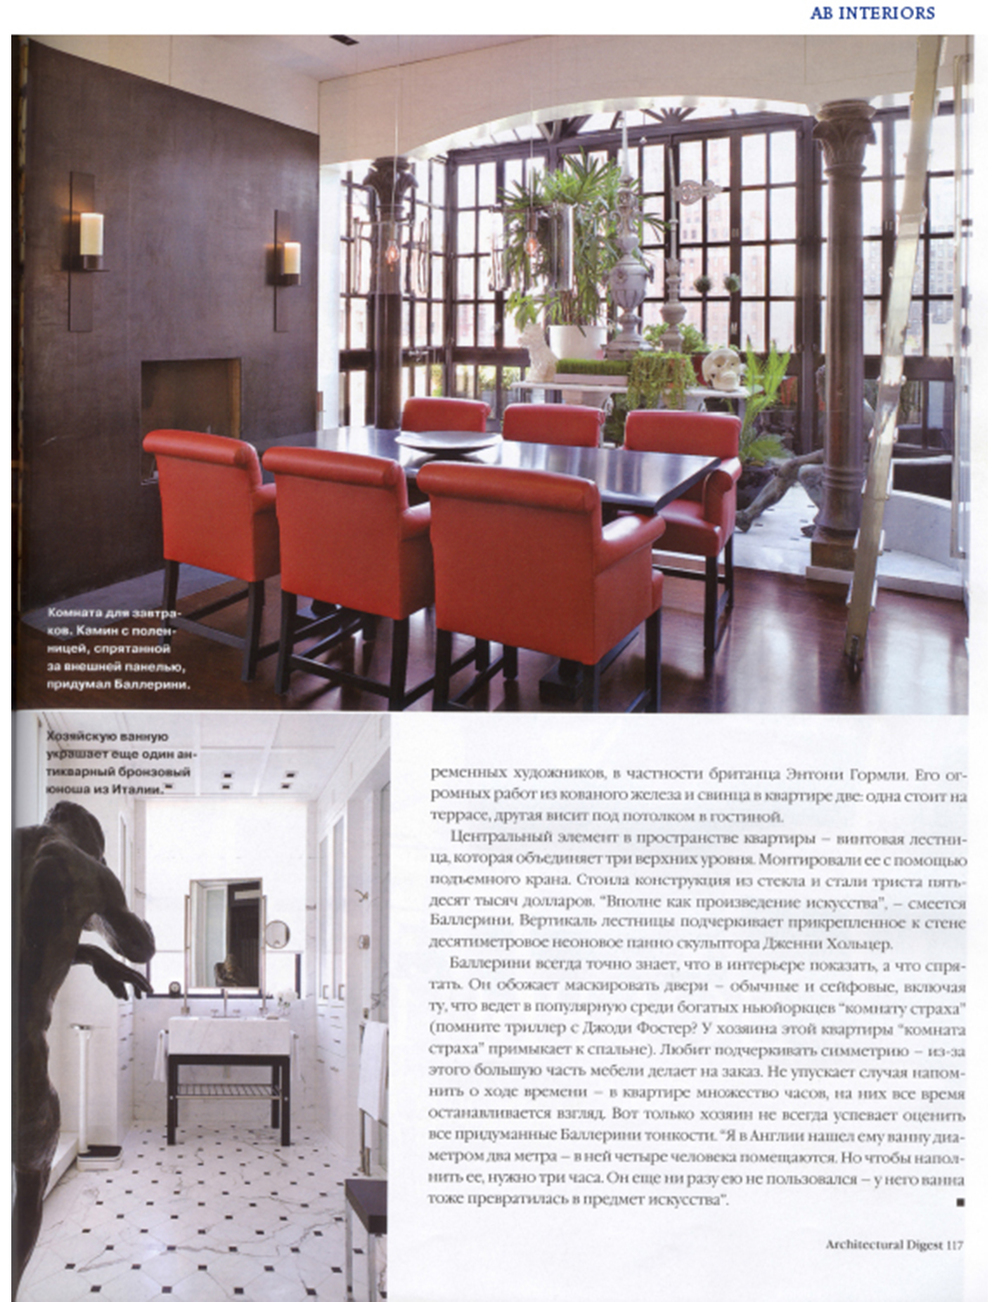 2006_02 ArchDigest russian-page9 copy.jpg